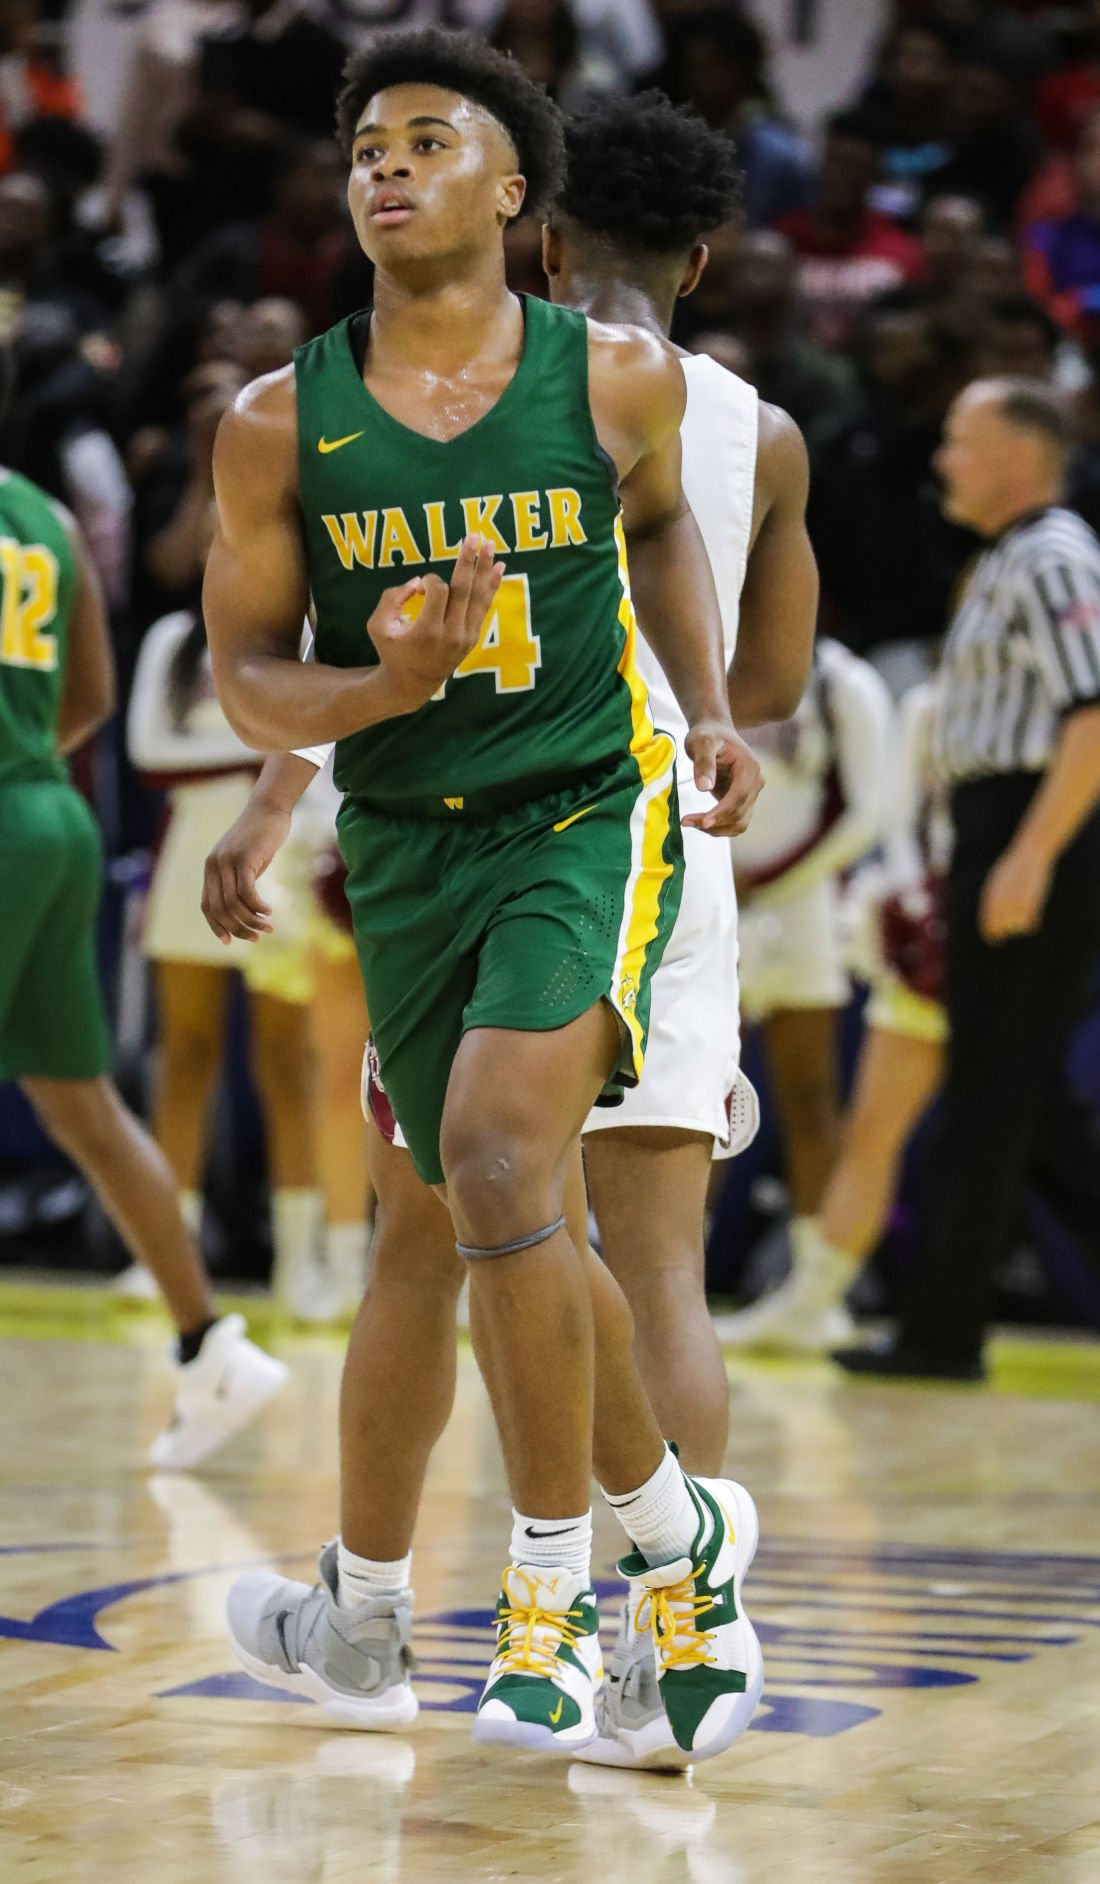 Walker vs. Ouachita Parish boys basketball Jalen Cook